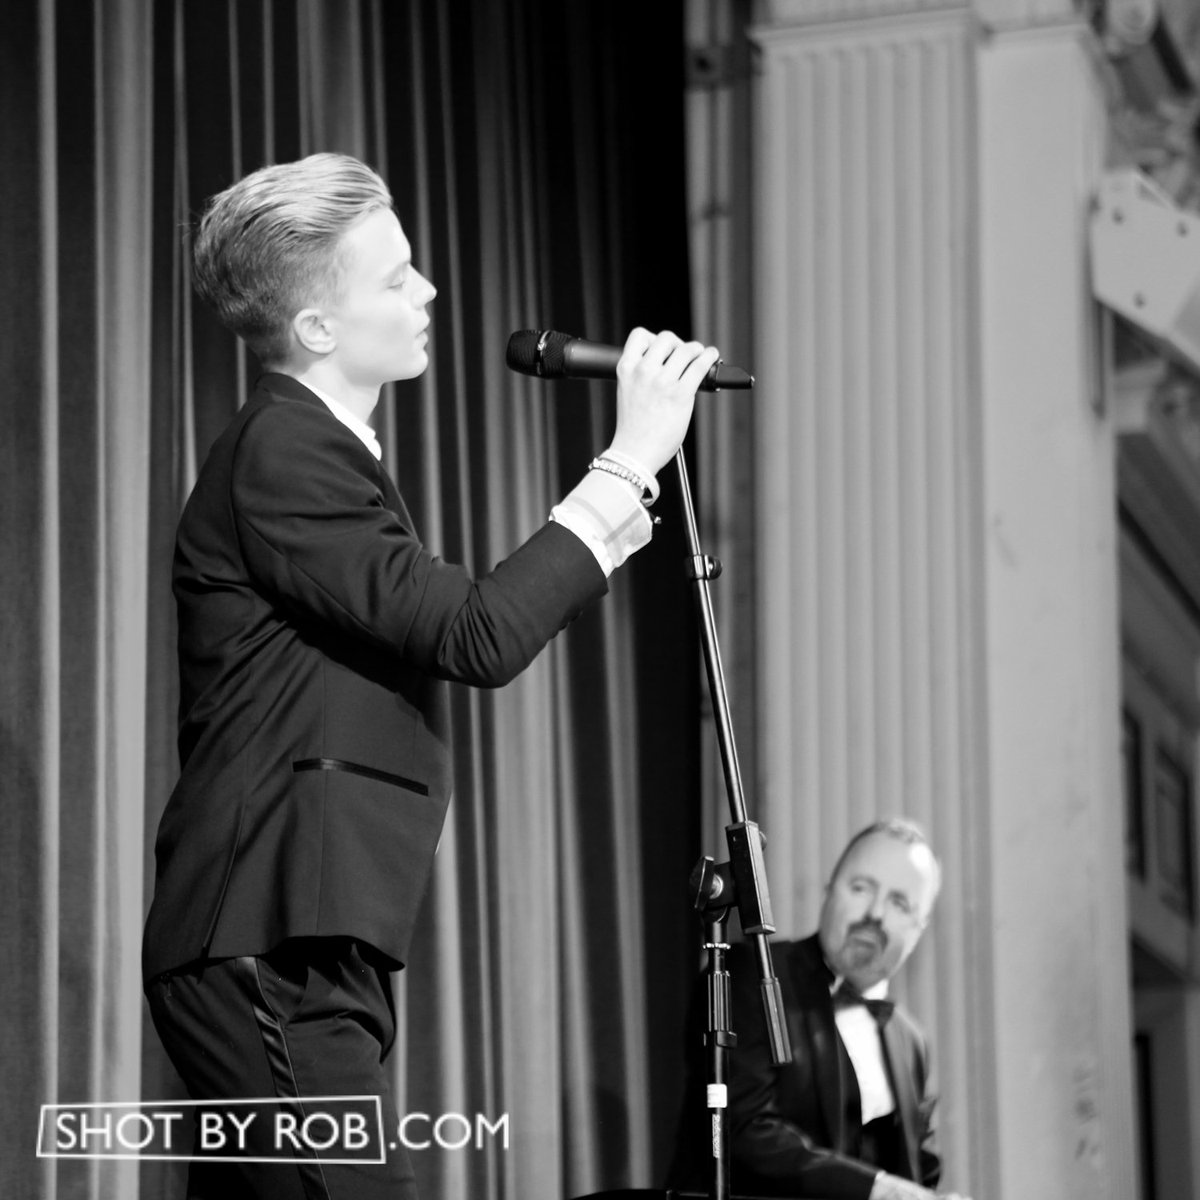 @RonanParke performs at @PT_Foundation #EqualityBall #London. #PeterTatchell #RonanParke https://t.co/QlVPDht6C4